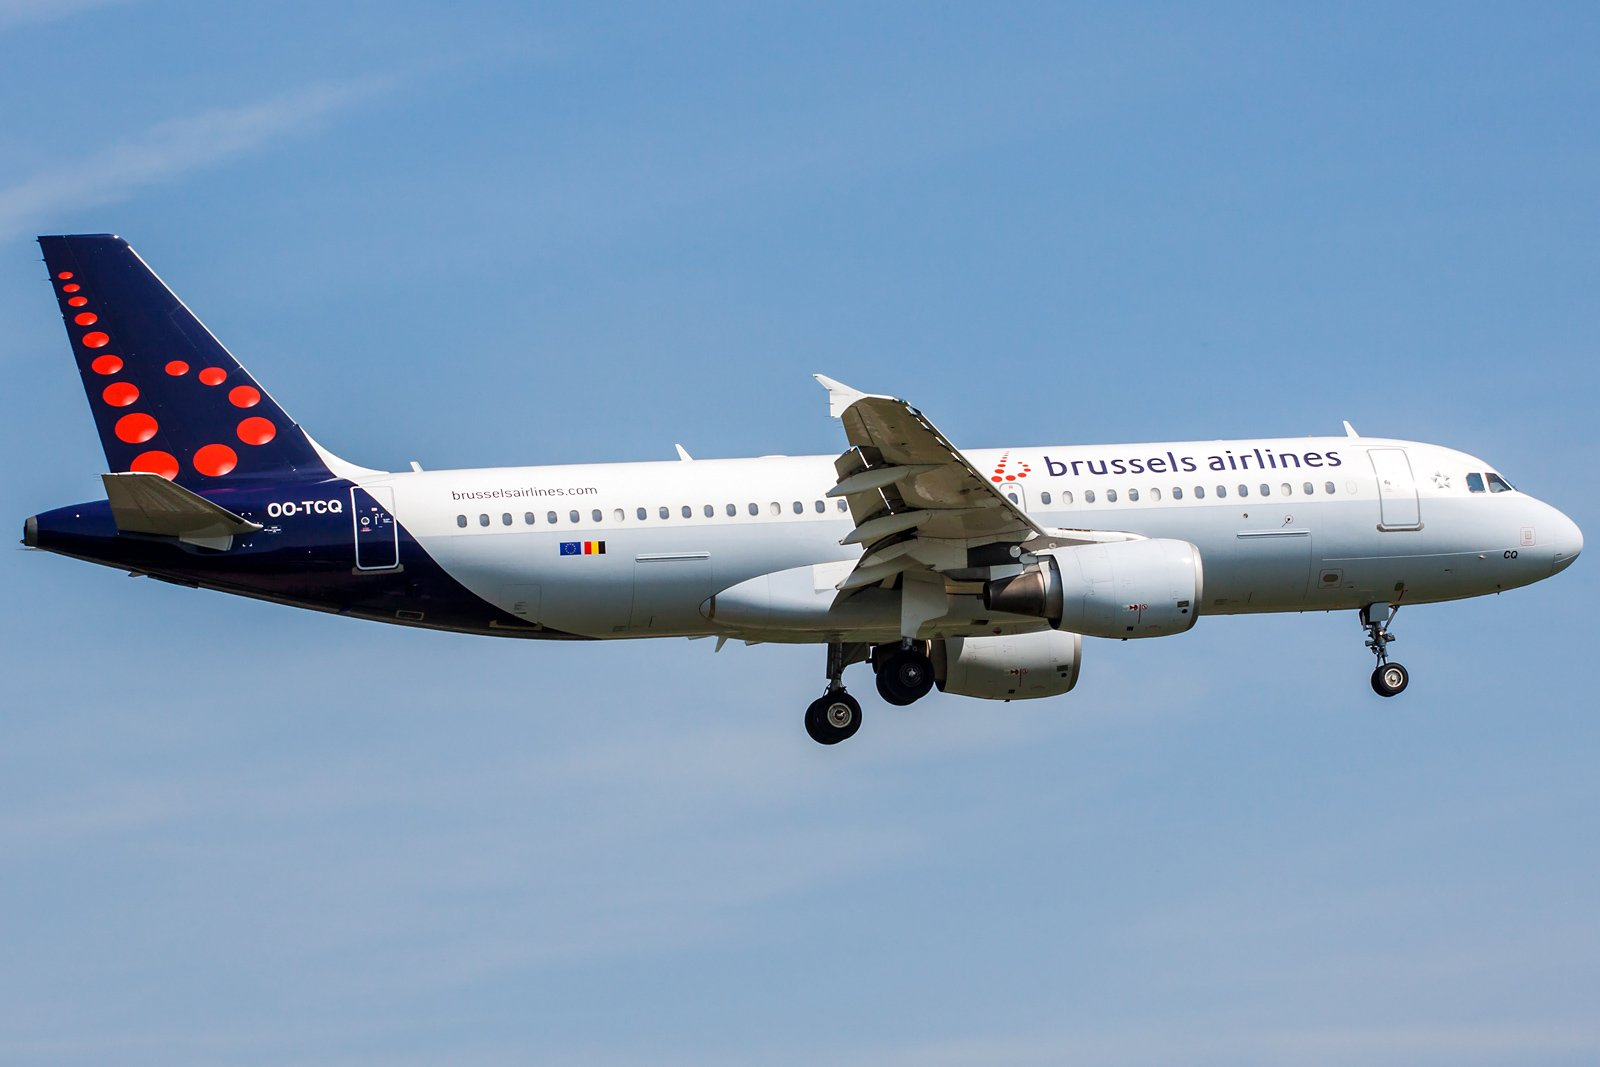 Brussels Airlines Airbus A320-214 OO-TCQ